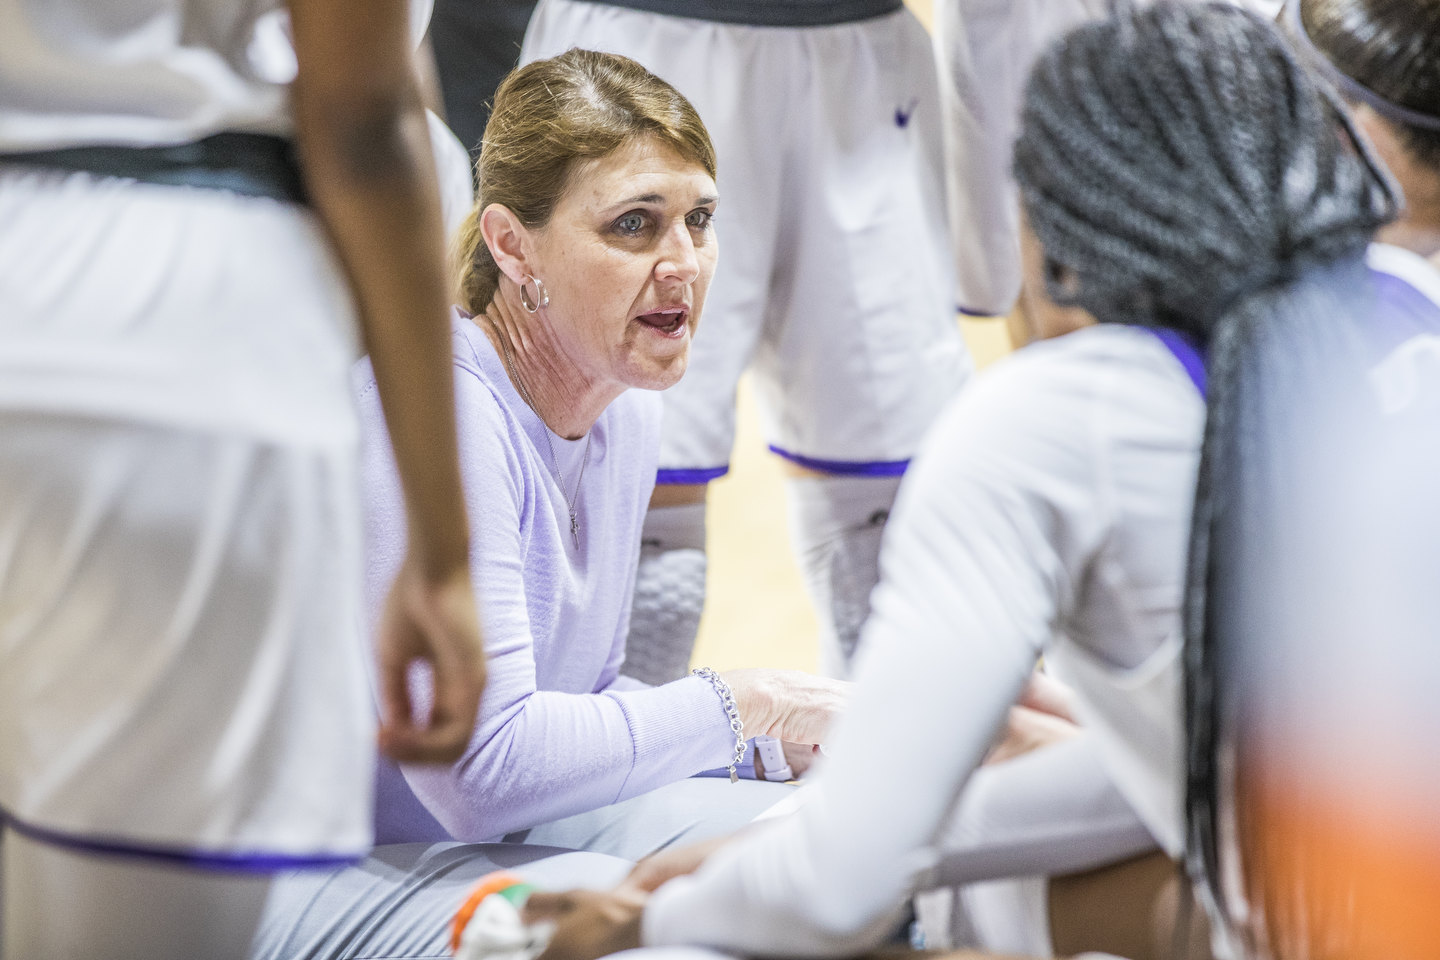 ACU women's basketball head coach Julie Goodenough